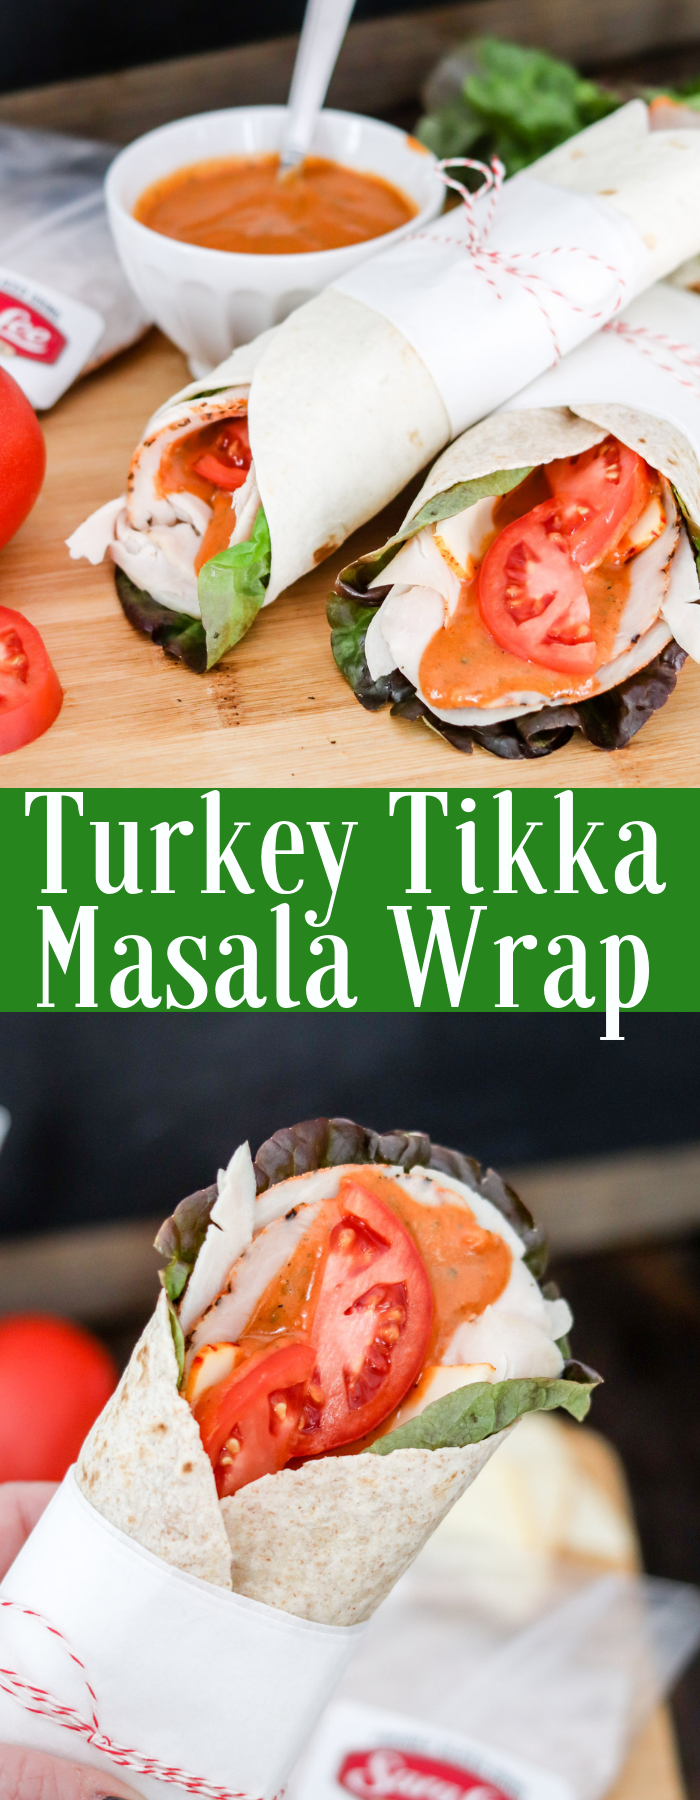 A Turkey Tikka Masala Wrap is a delicious, easy, and quick meal with only a handful of ingredients! Perfect to take on-the-go, or eat at home! Creamy tikka masala sauce over turkey pair perfectly for this wrap!